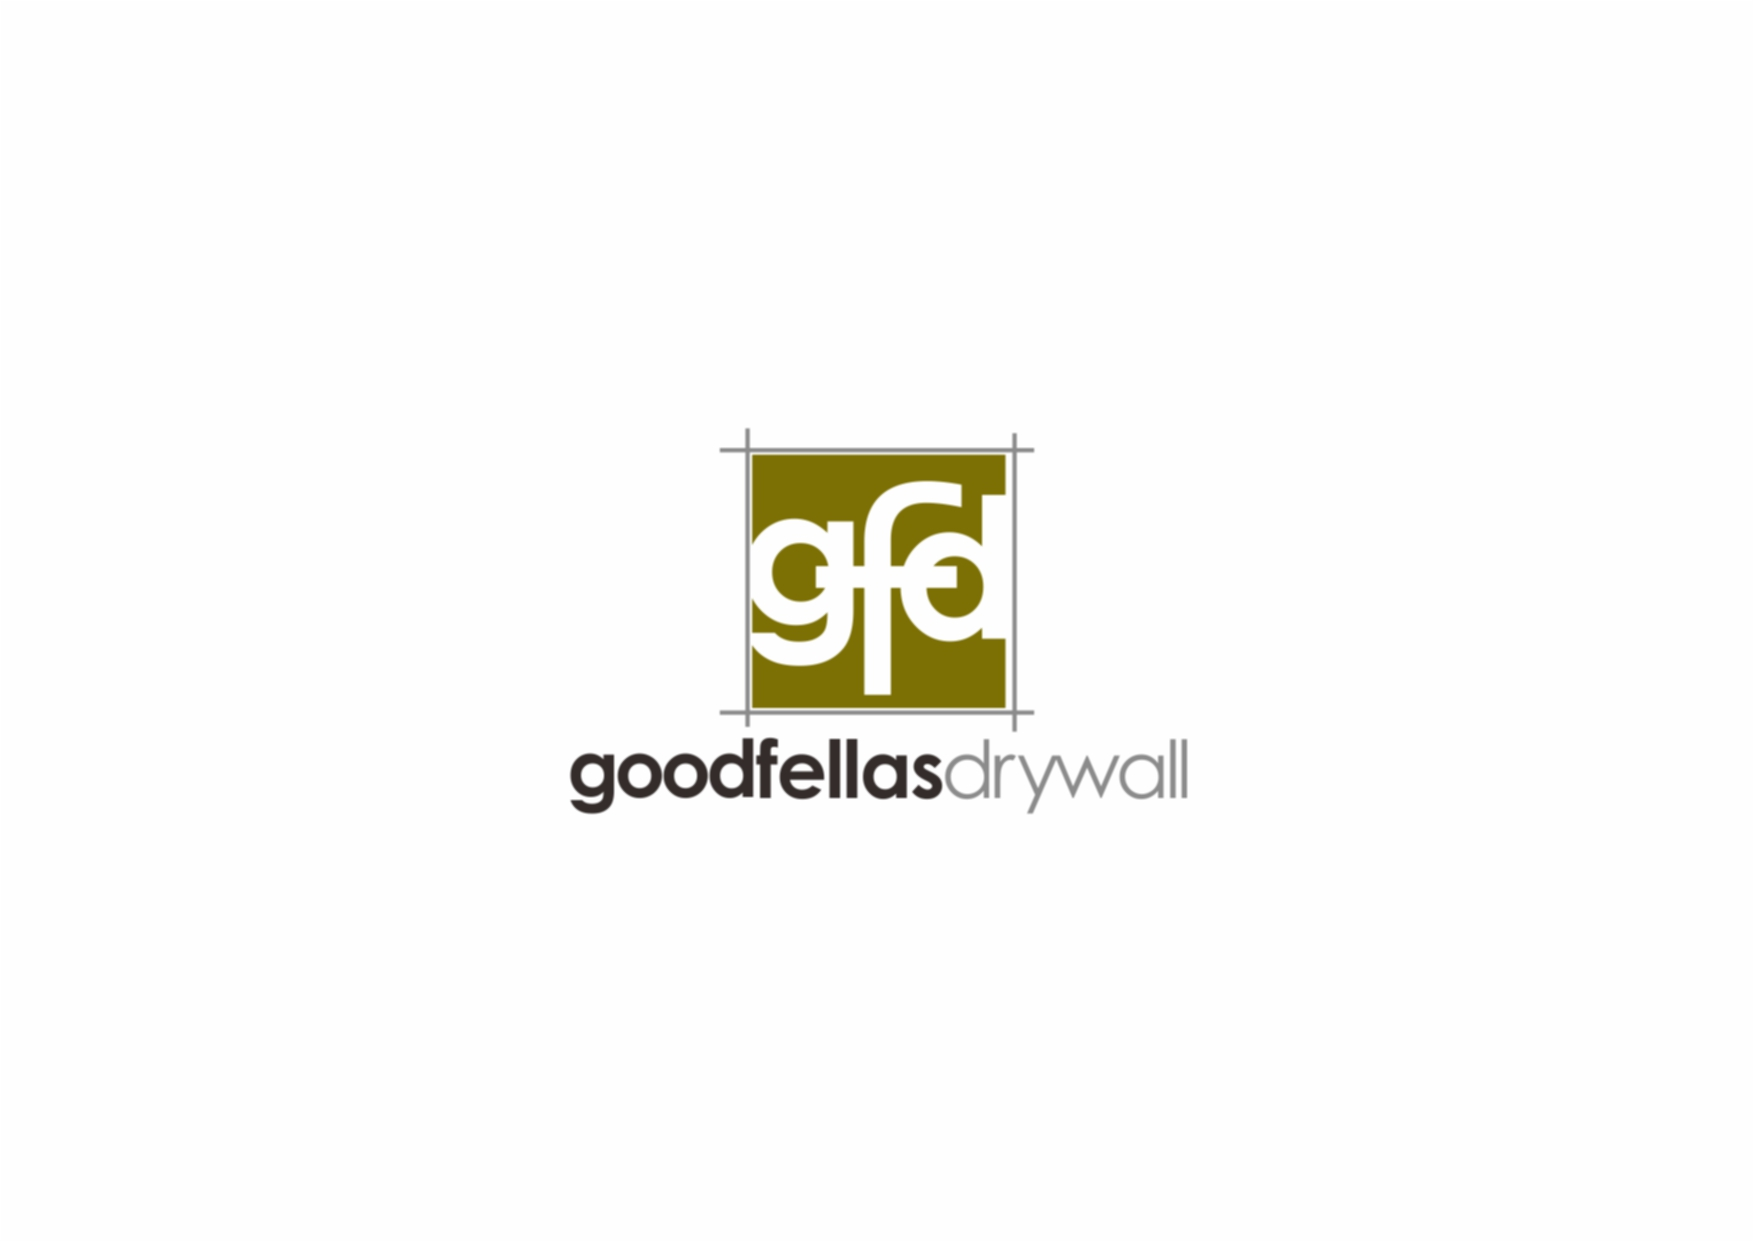 Logo Design by Private User - Entry No. 77 in the Logo Design Contest Creative Logo Design for Goodfellas Drywall.